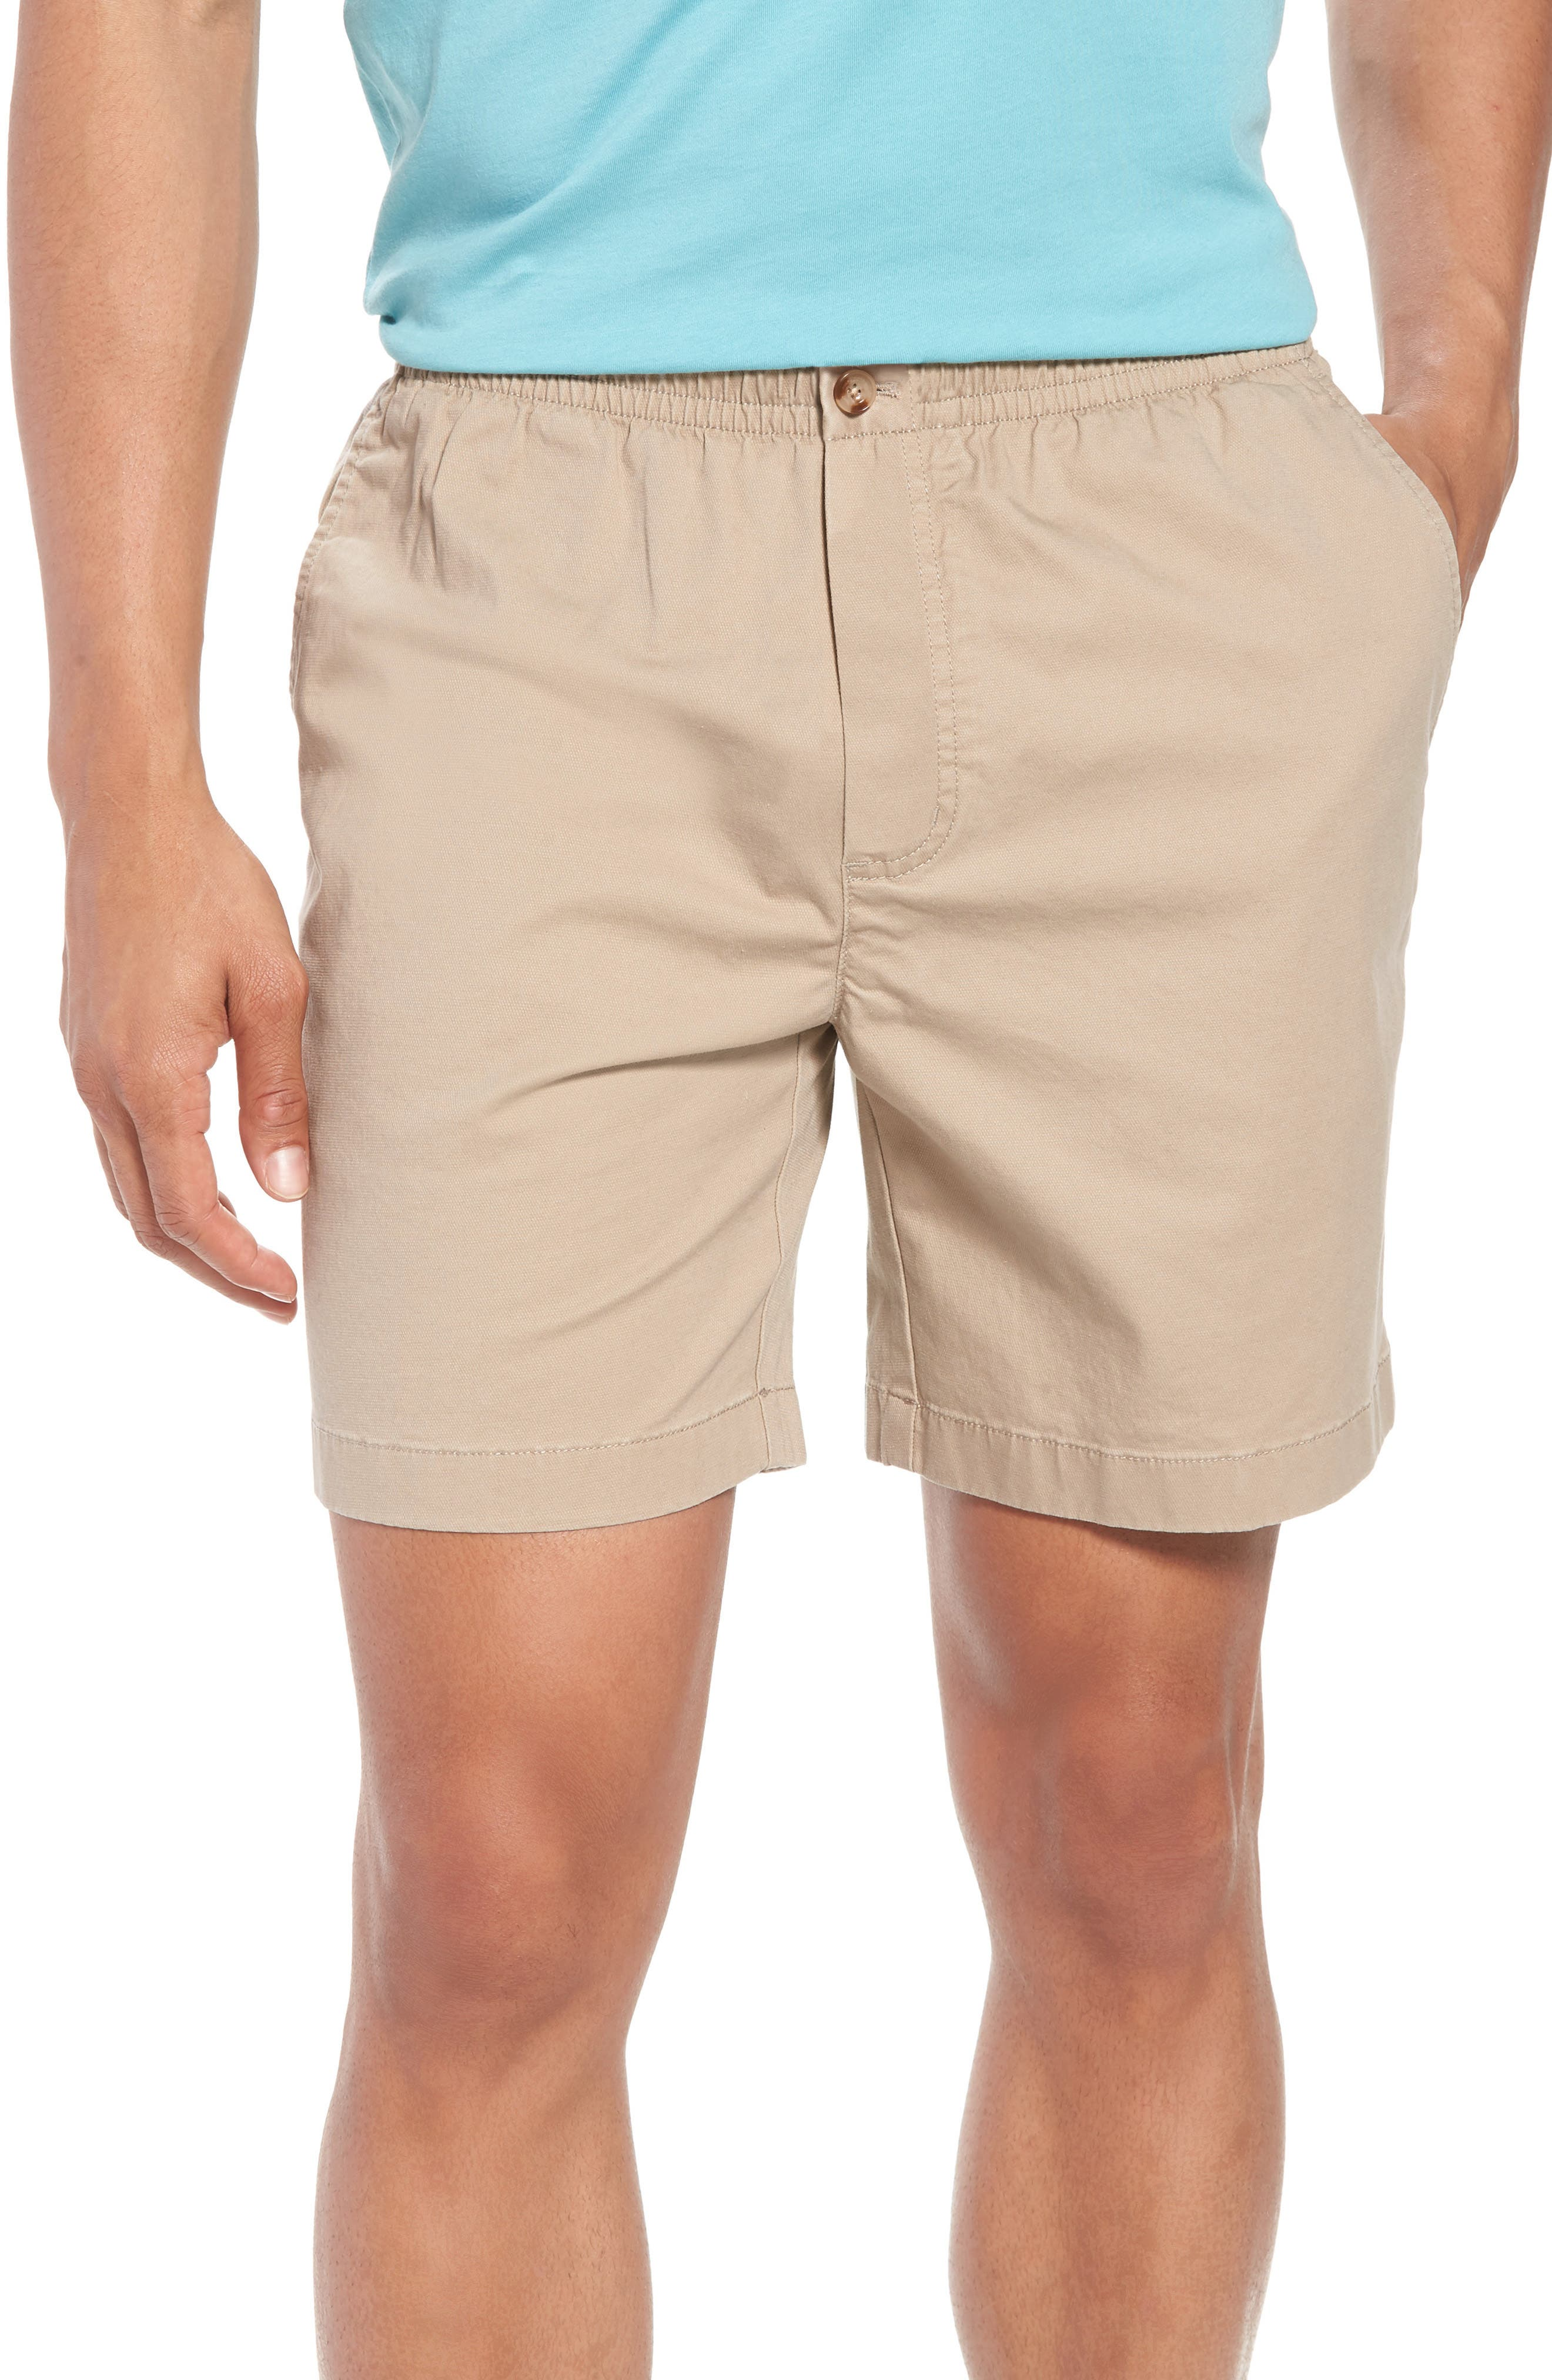 Jetty Stretch Cotton Shorts,                         Main,                         color, 250